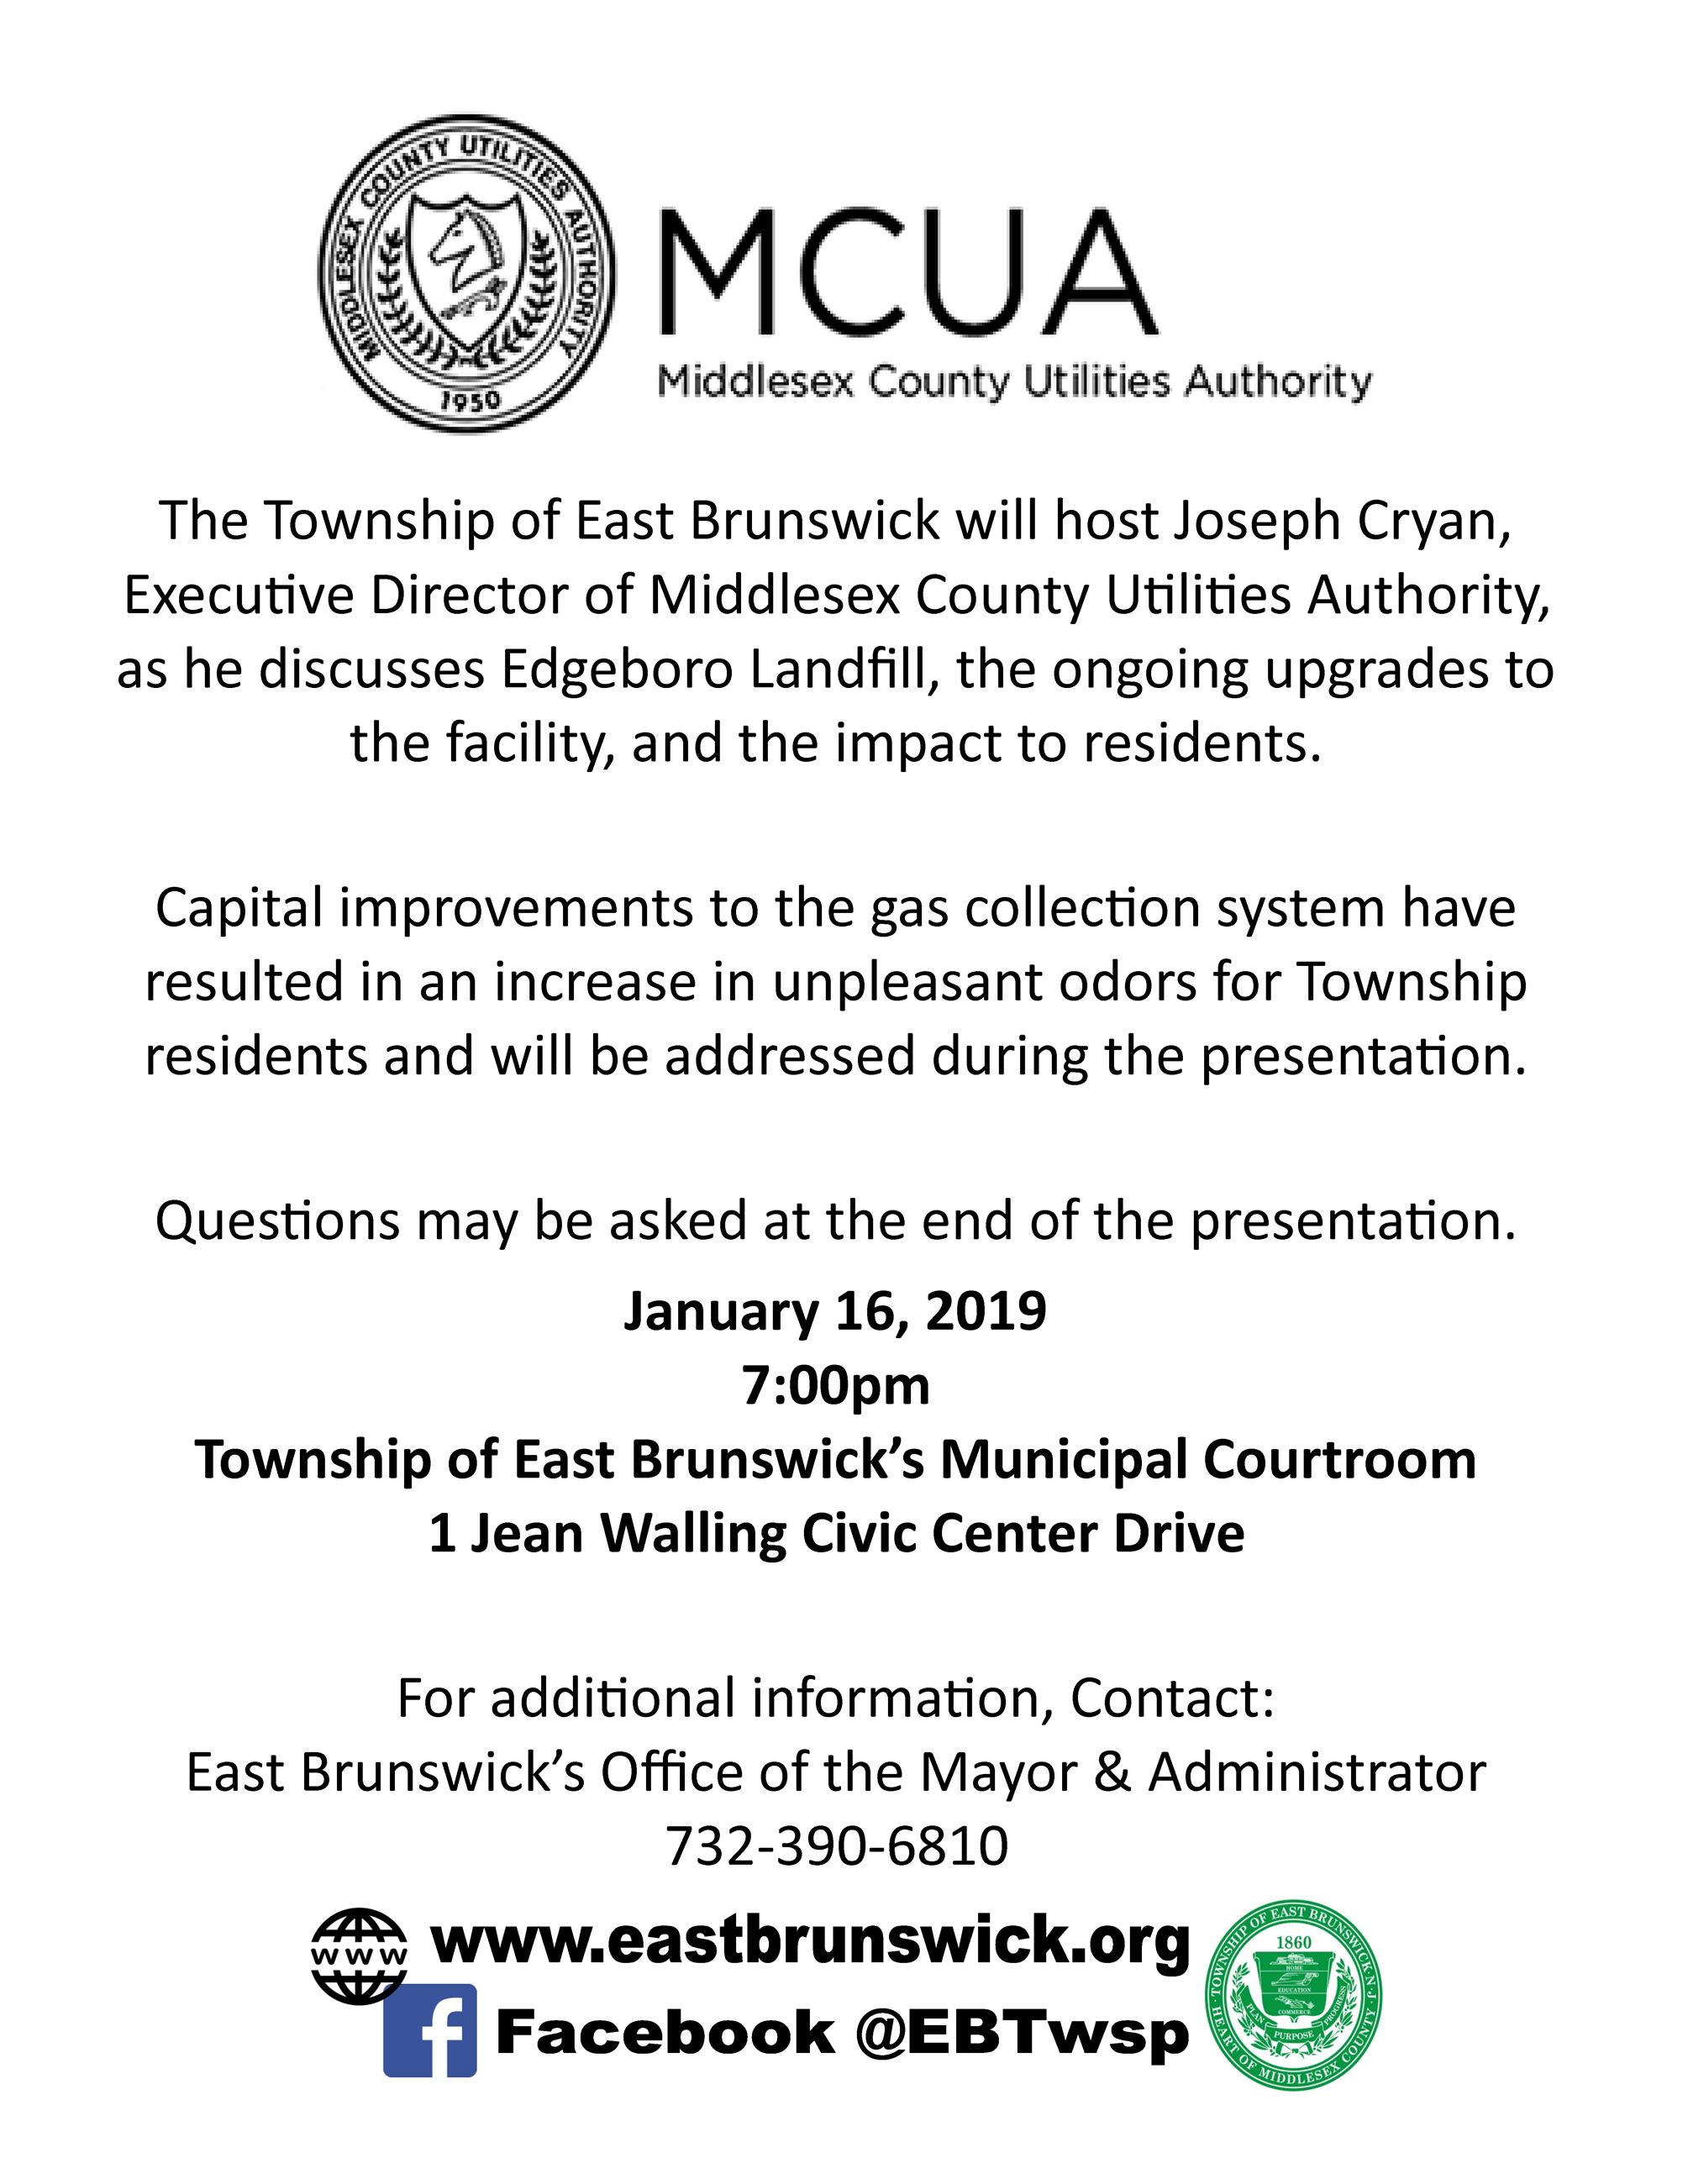 MCUA Meeting regarding Edgeboro Landfill